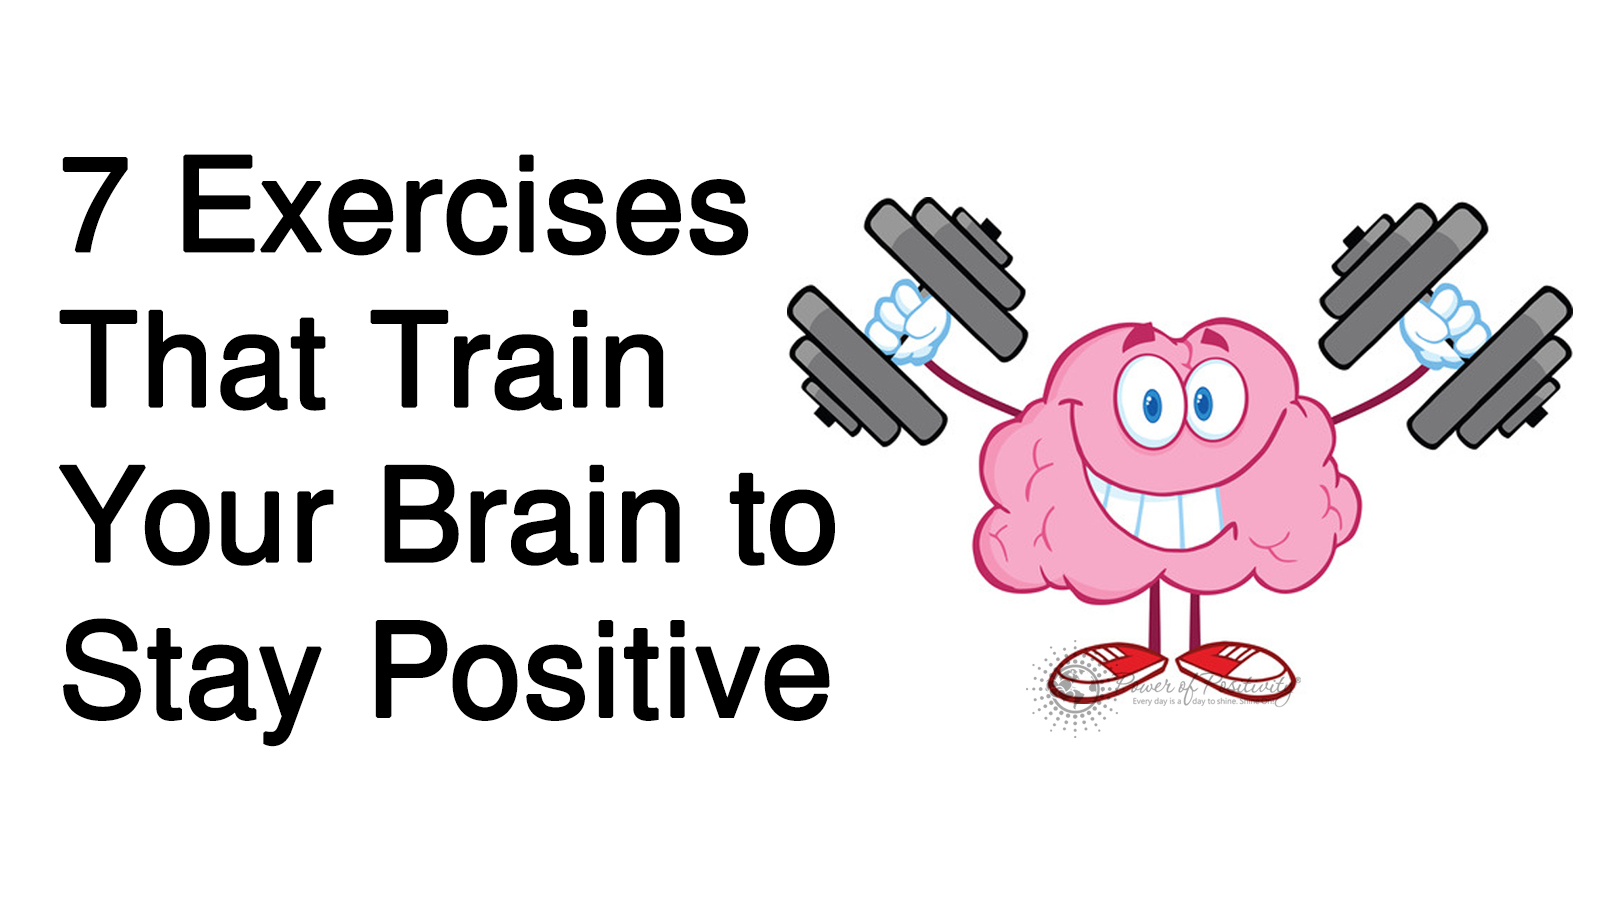 Awesome Quotes 7 Exercises That Train Your Brain To Stay